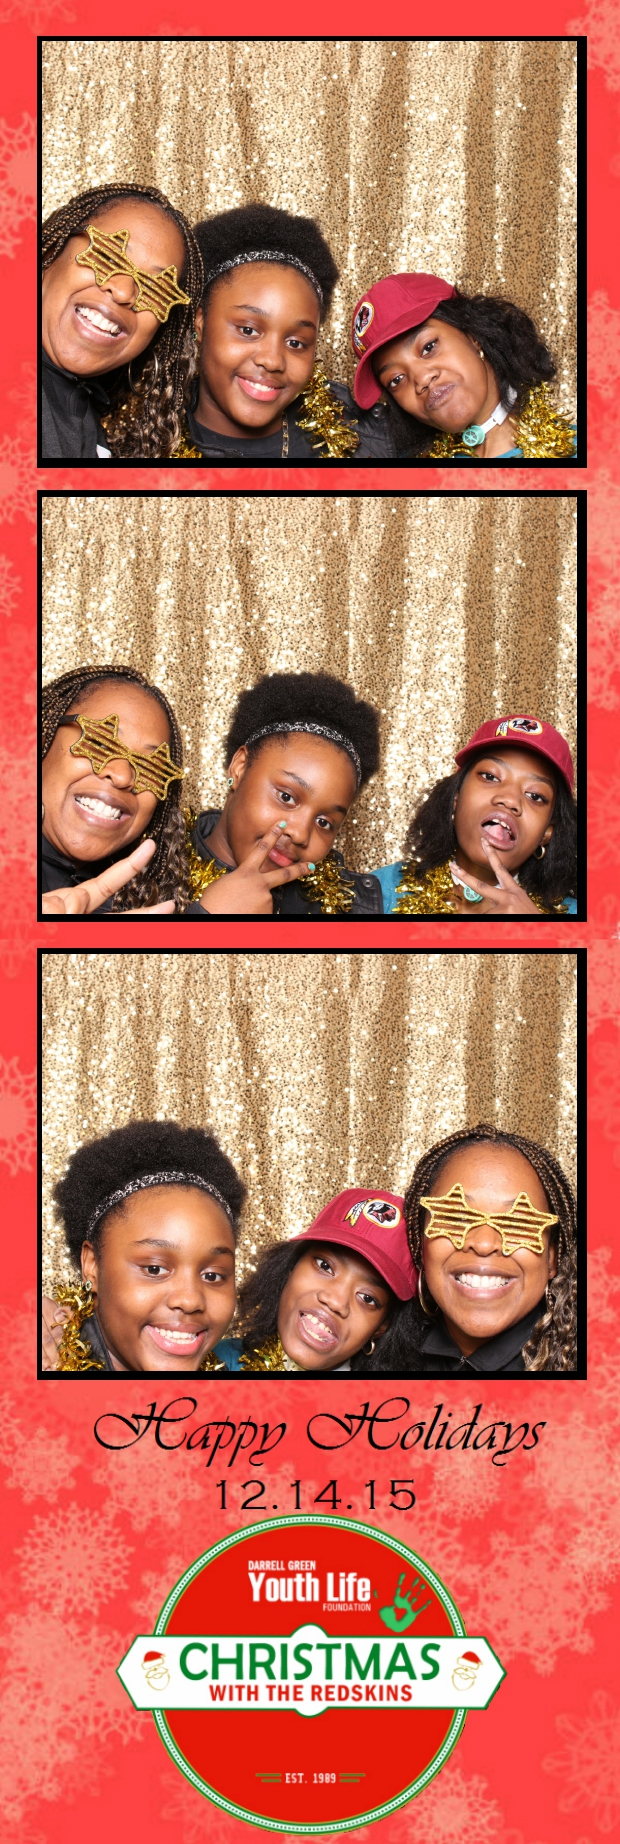 Guest House Events Photo Booth DGYLF Strips (17).jpg